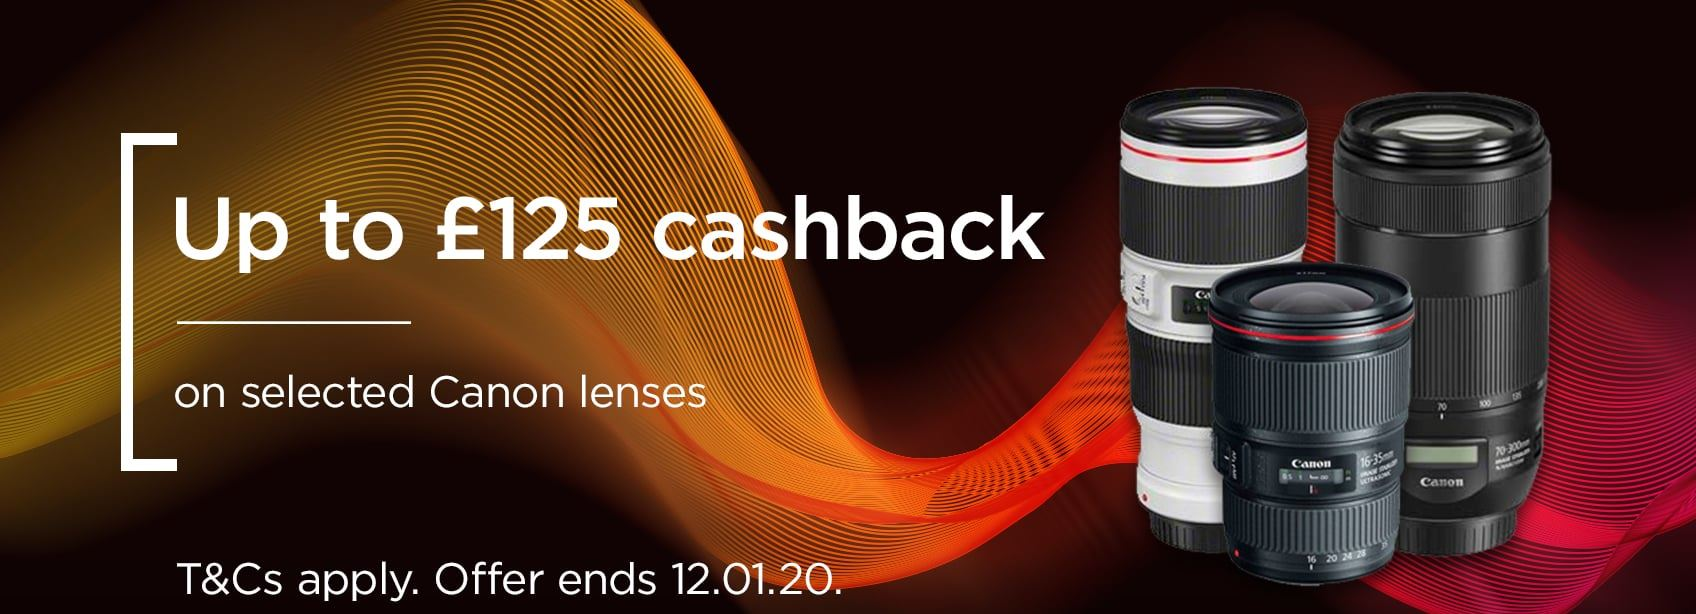 Up to £125 cashback on selected Canon lenses